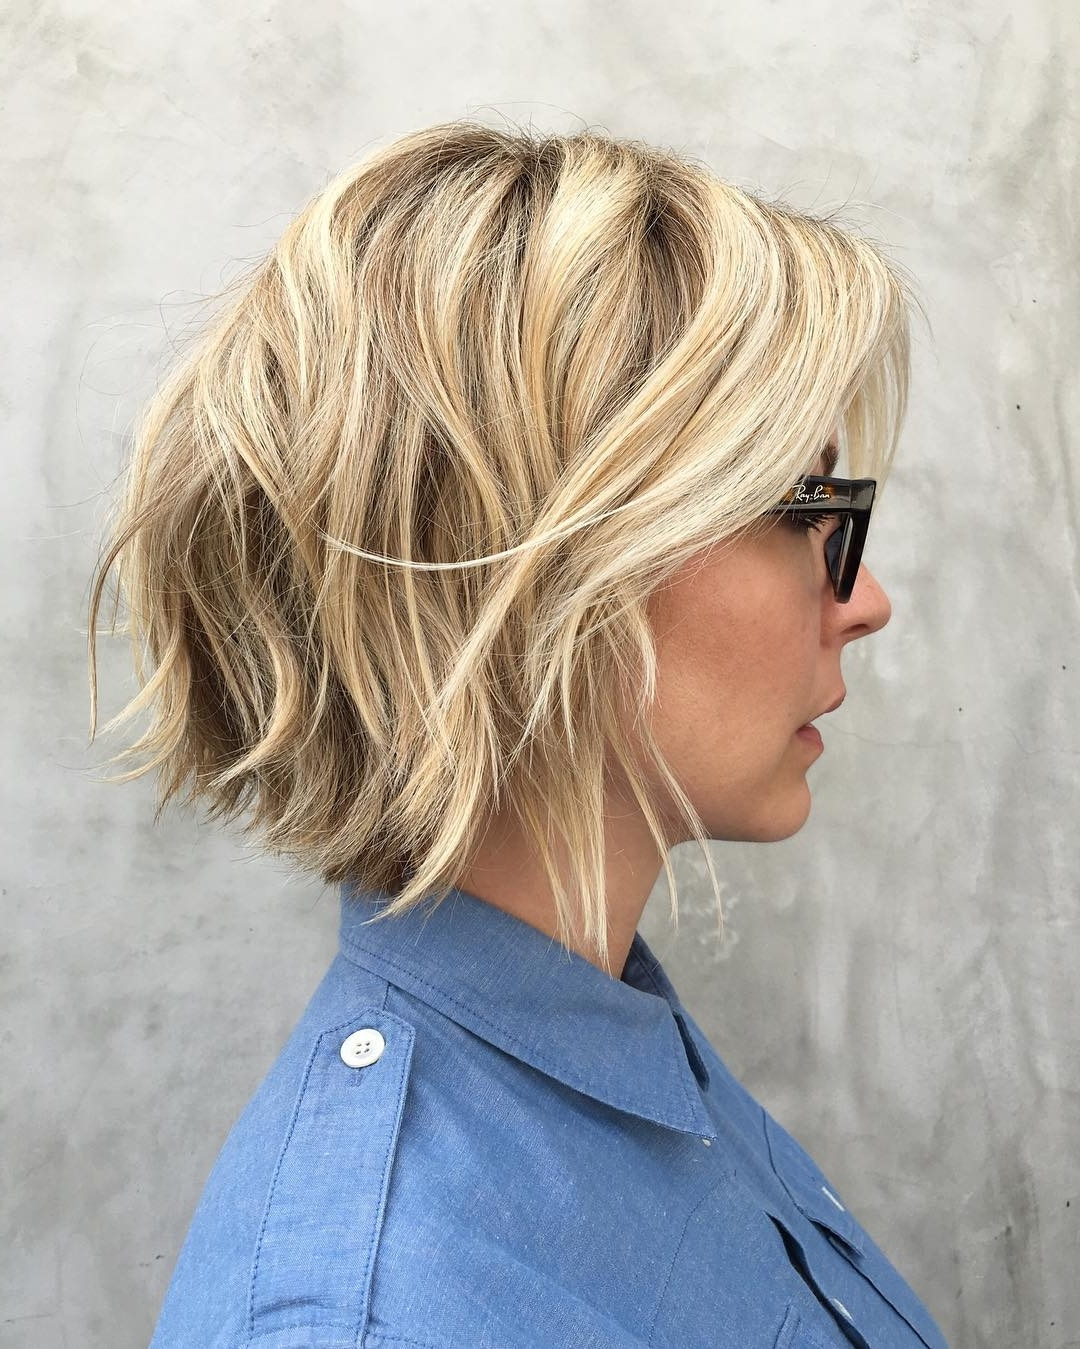 2017 Shaggy Bob Cut Hairstyles Within 30 Trendiest Shaggy Bob Haircuts Of The Season (View 5 of 15)